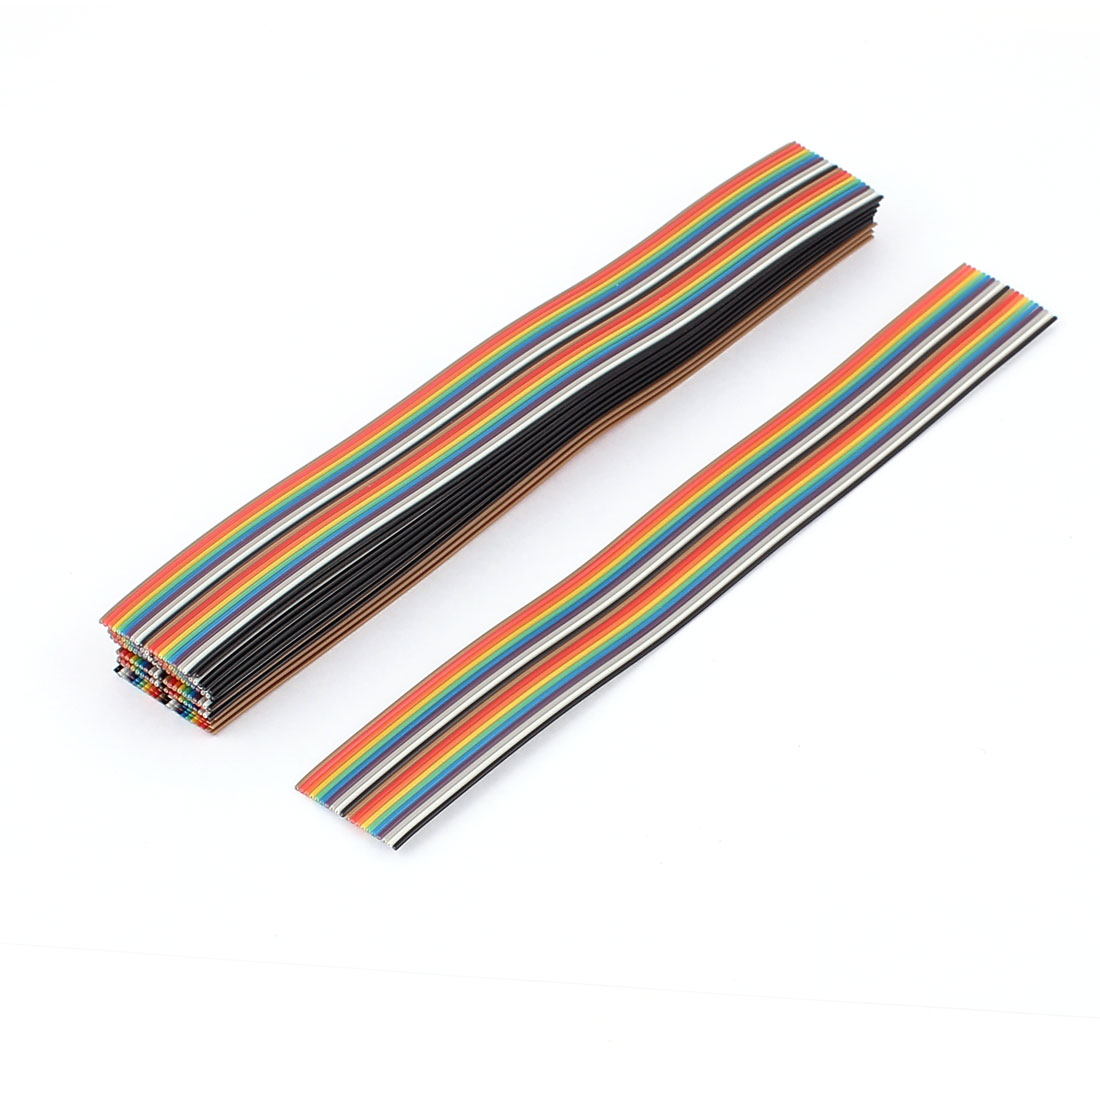 20 Pcs 200mm Long 20-Pin Rainbow Color Flat Ribbon Cable IDC Wire